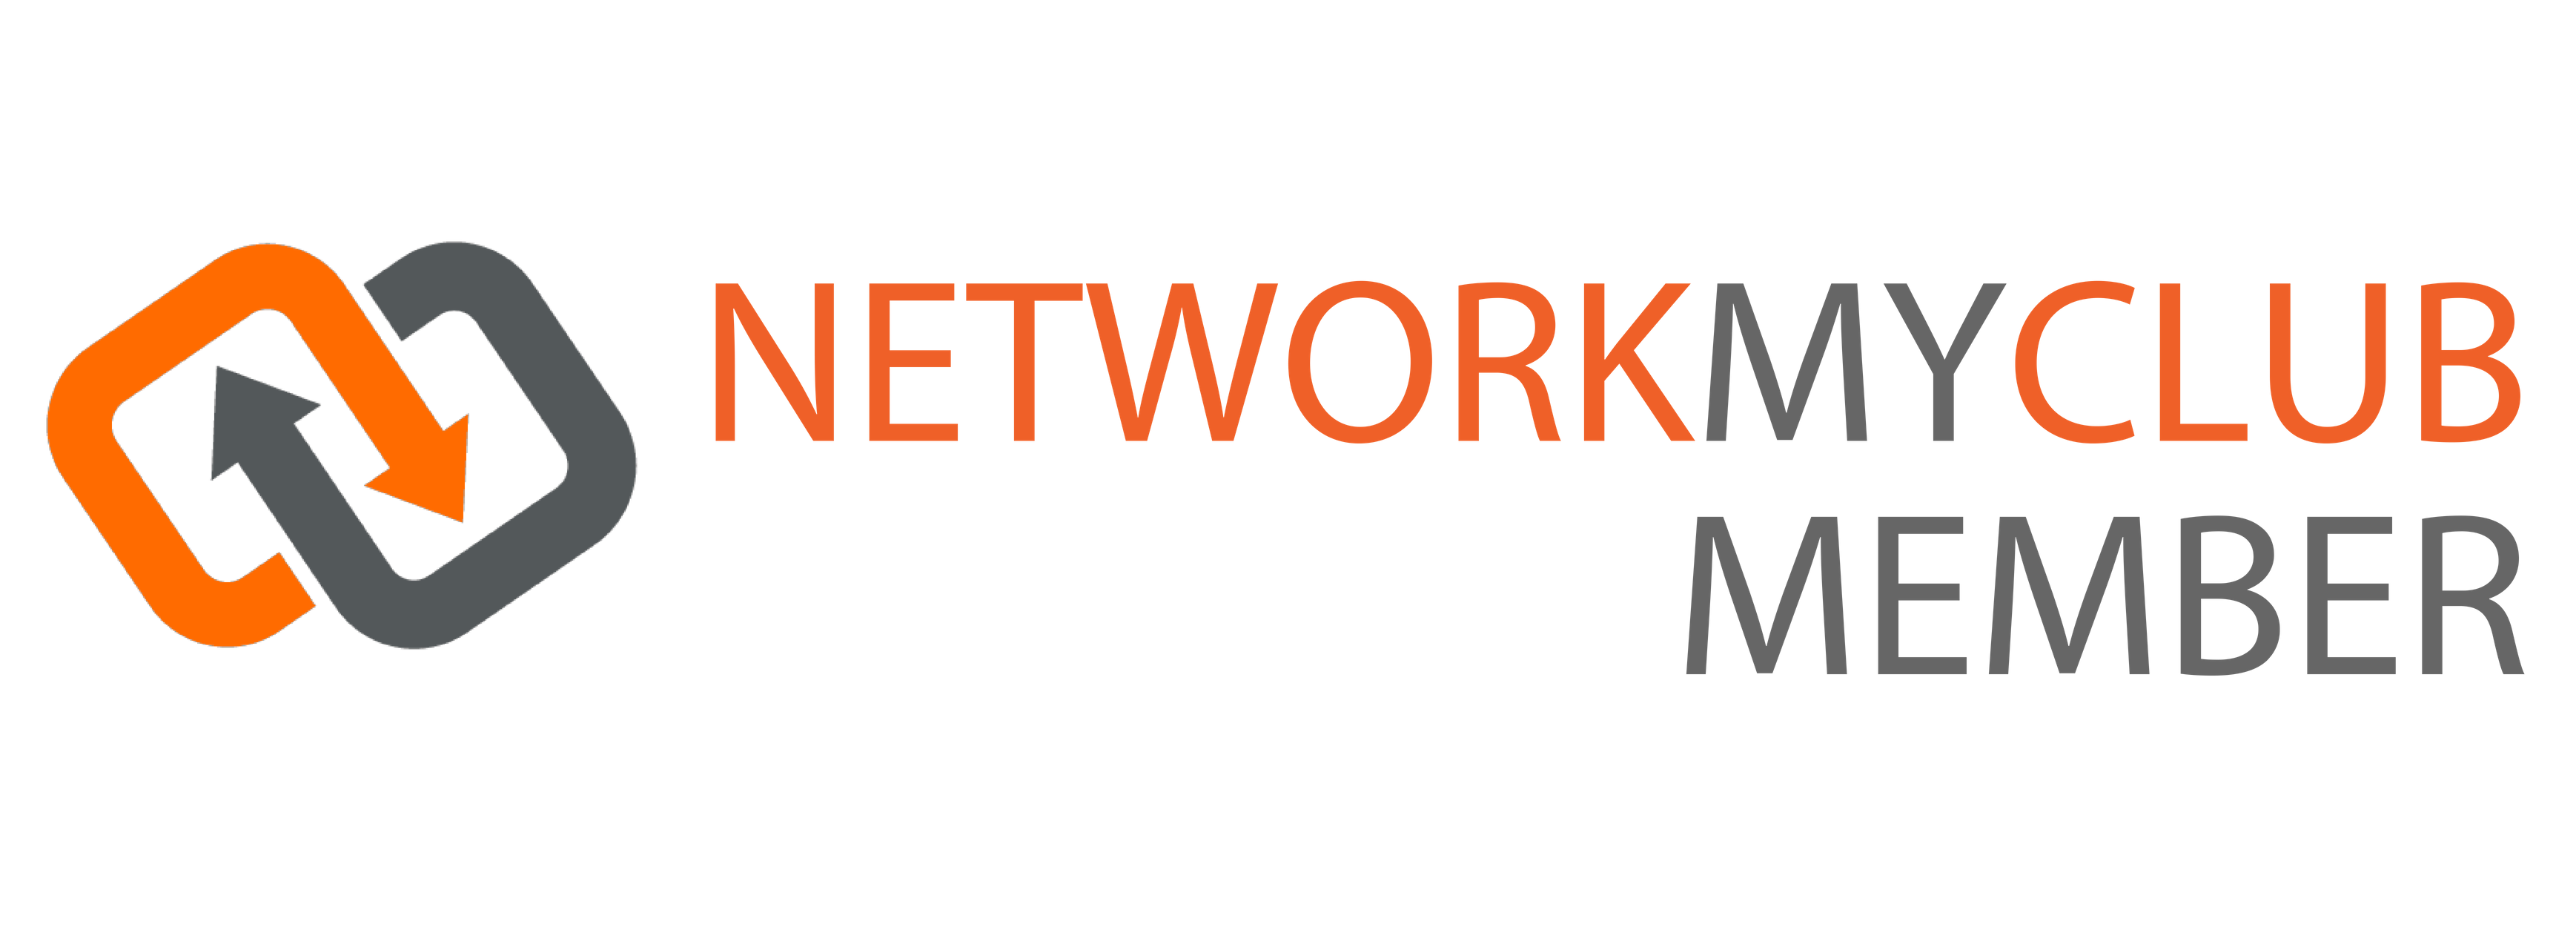 Network my club logo